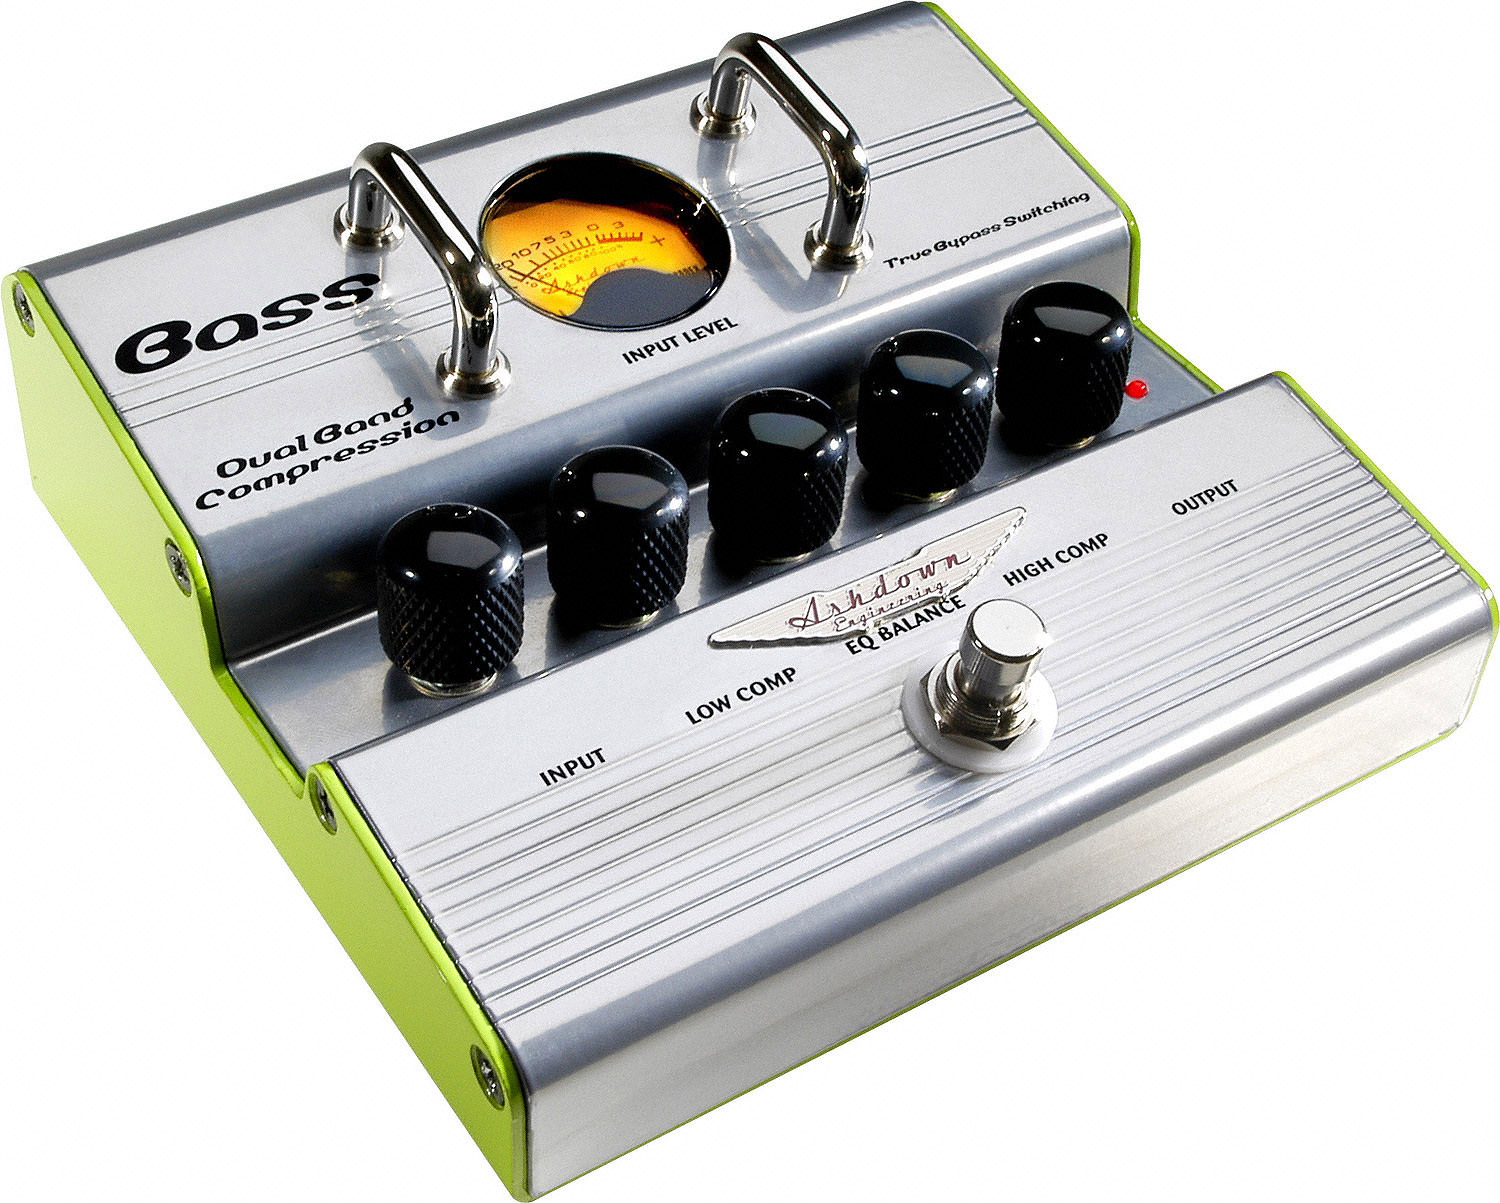 Dual  Band Bass Compressor Amplifier Pedal